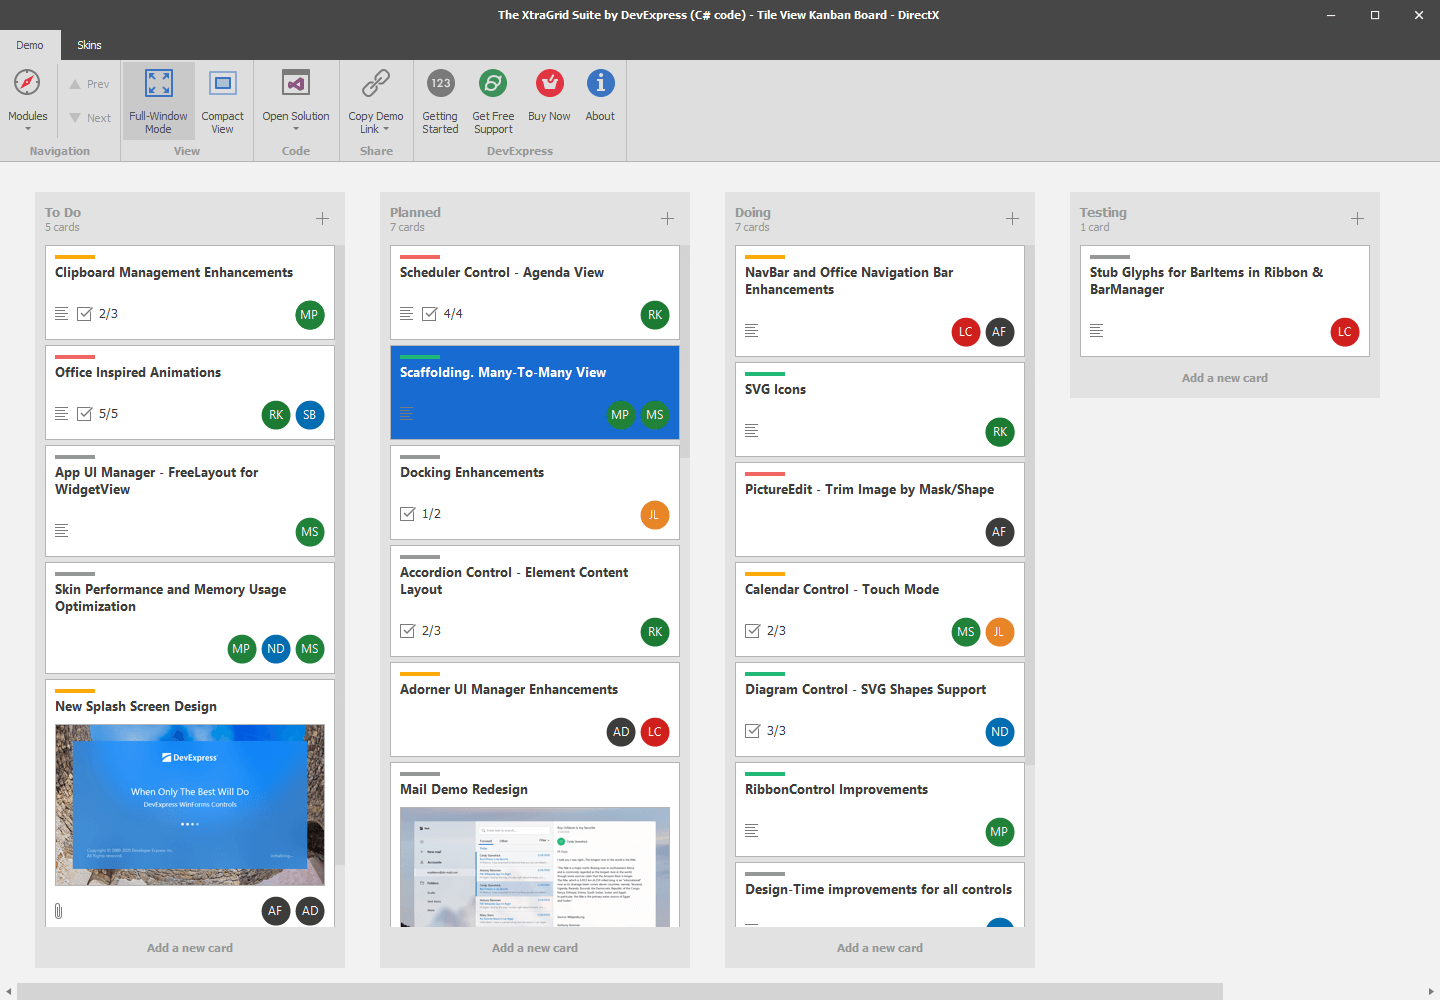 Kanban Board - Tile View, WinForms Data Grid | DevExpress